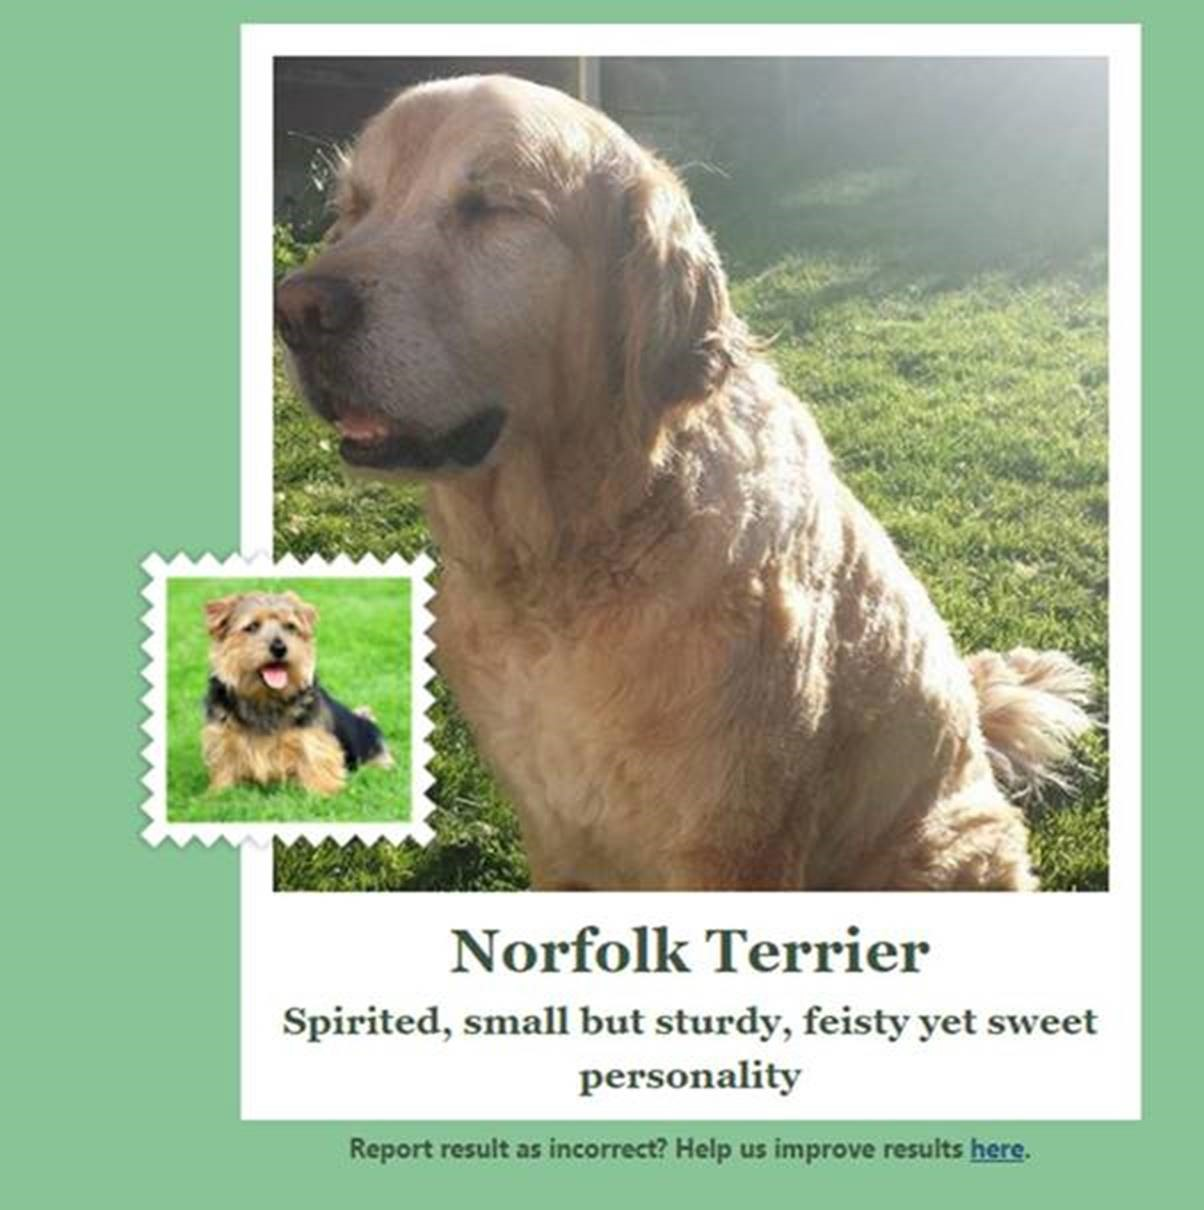 A Golden Retriver incorrectly identified as a Norfolk Terrier